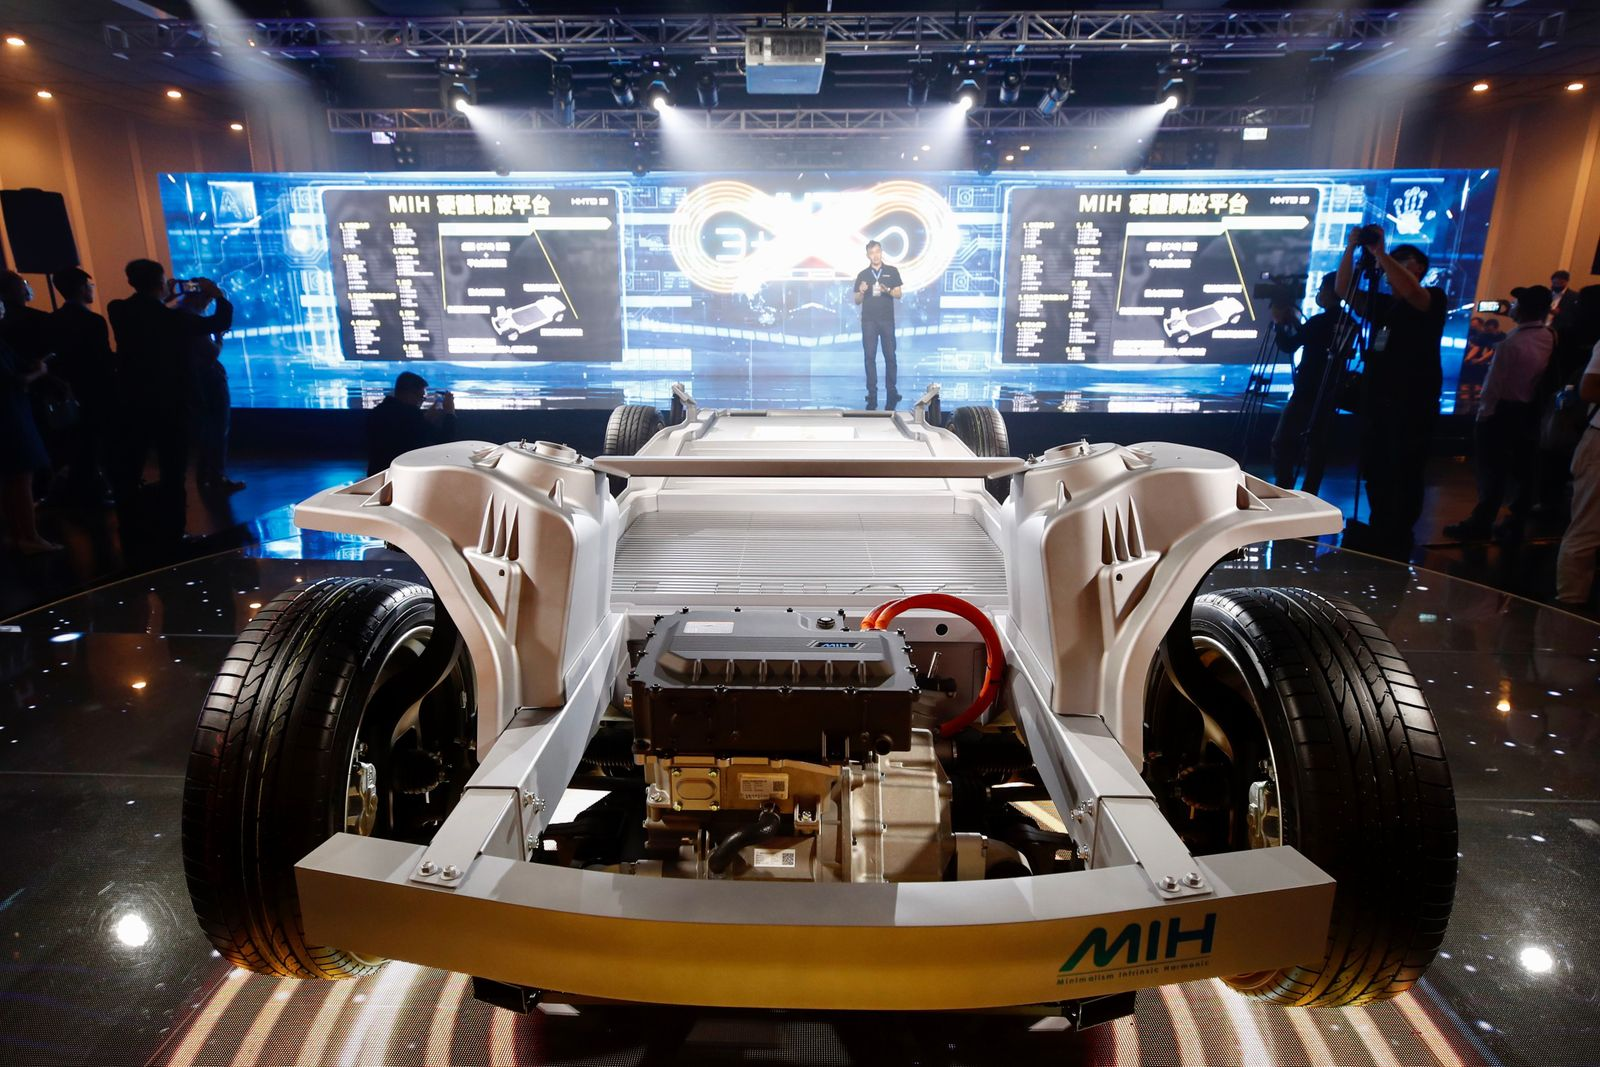 Foxconn unveils its first open electric car hardware and software platform, Taipei, Taiwan - 16 Oct 2020